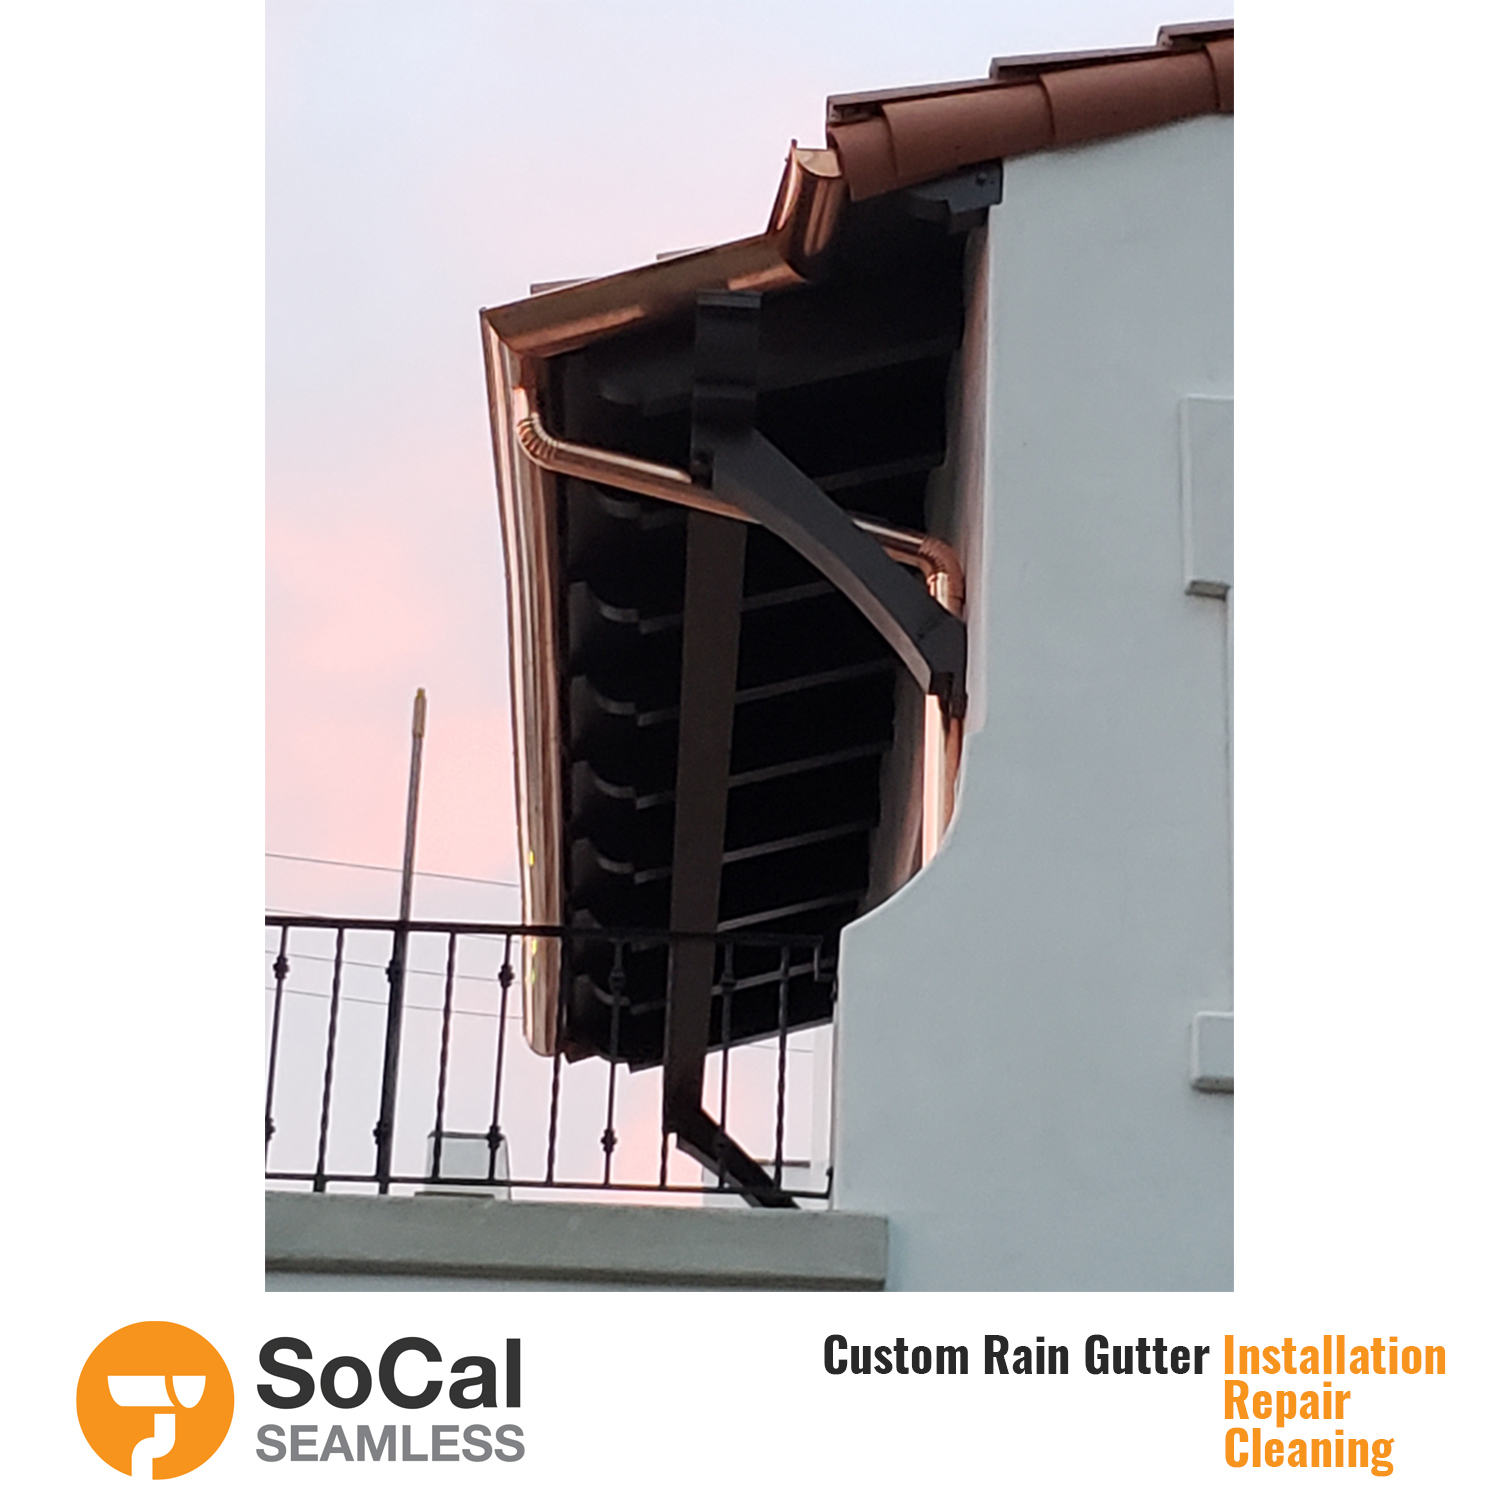 quality half round copper rain gutter installation socal seamless